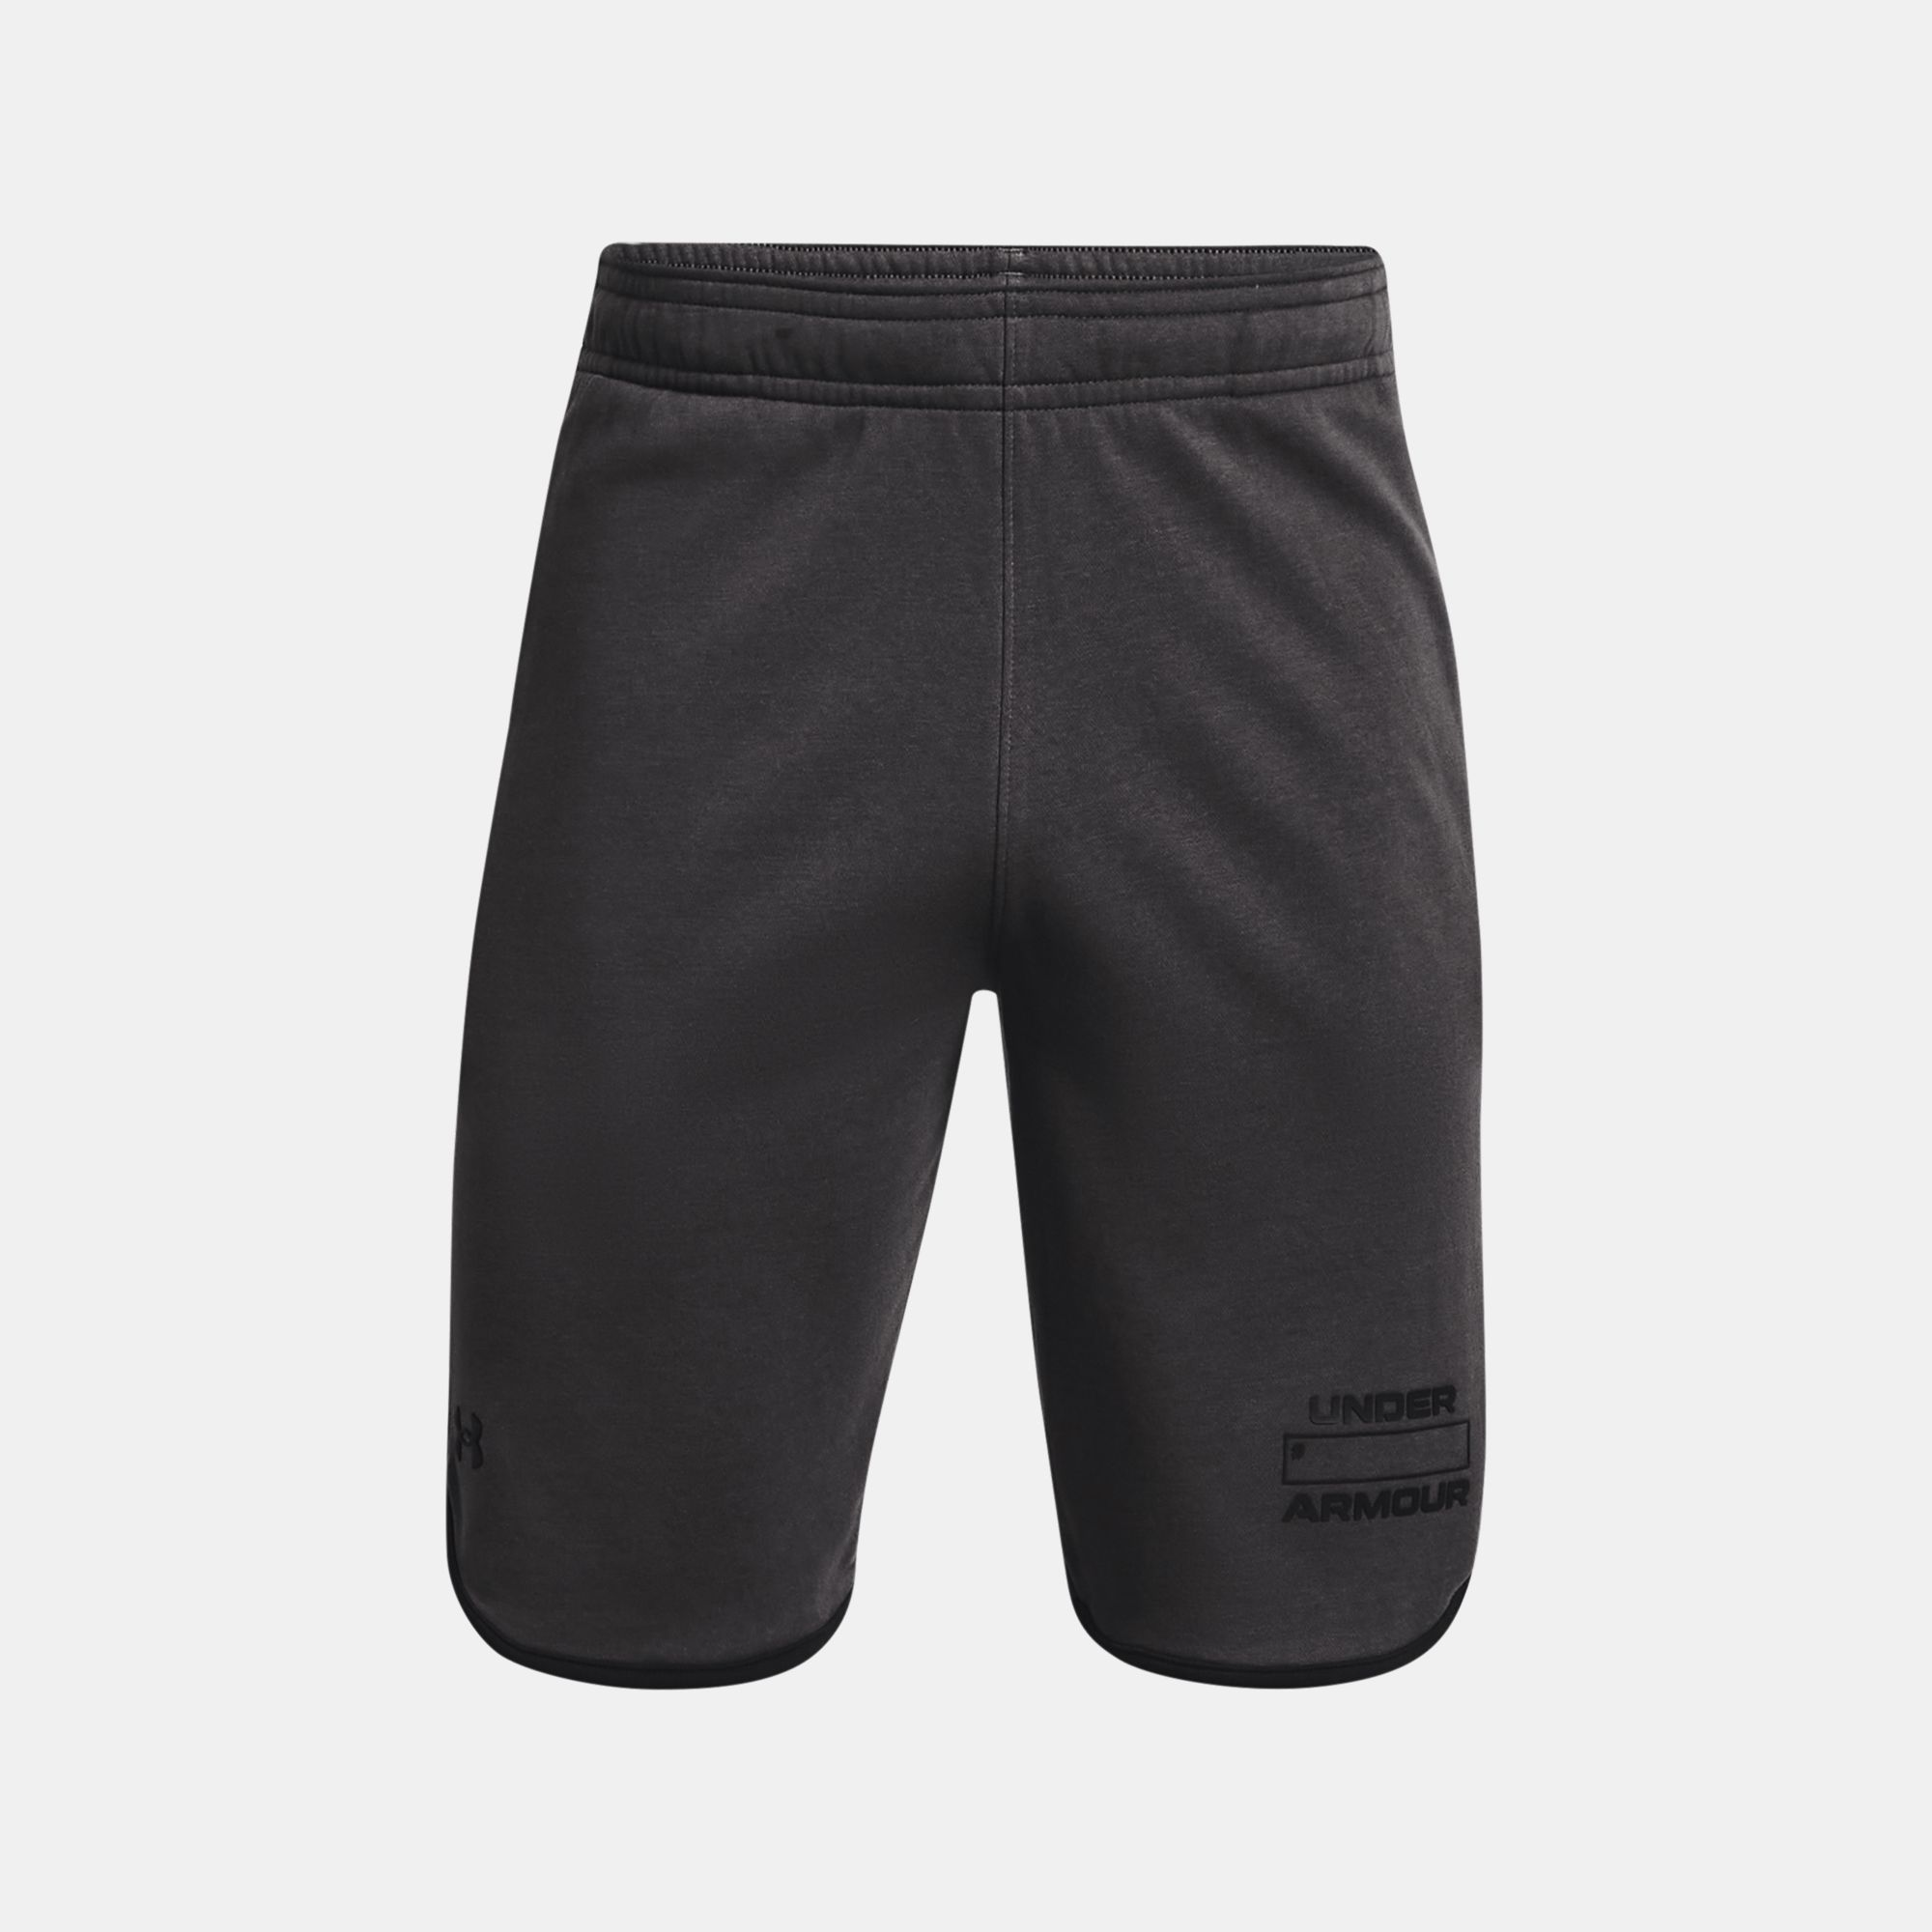 Clothing -  under armour UA Rival Terry Number Shorts